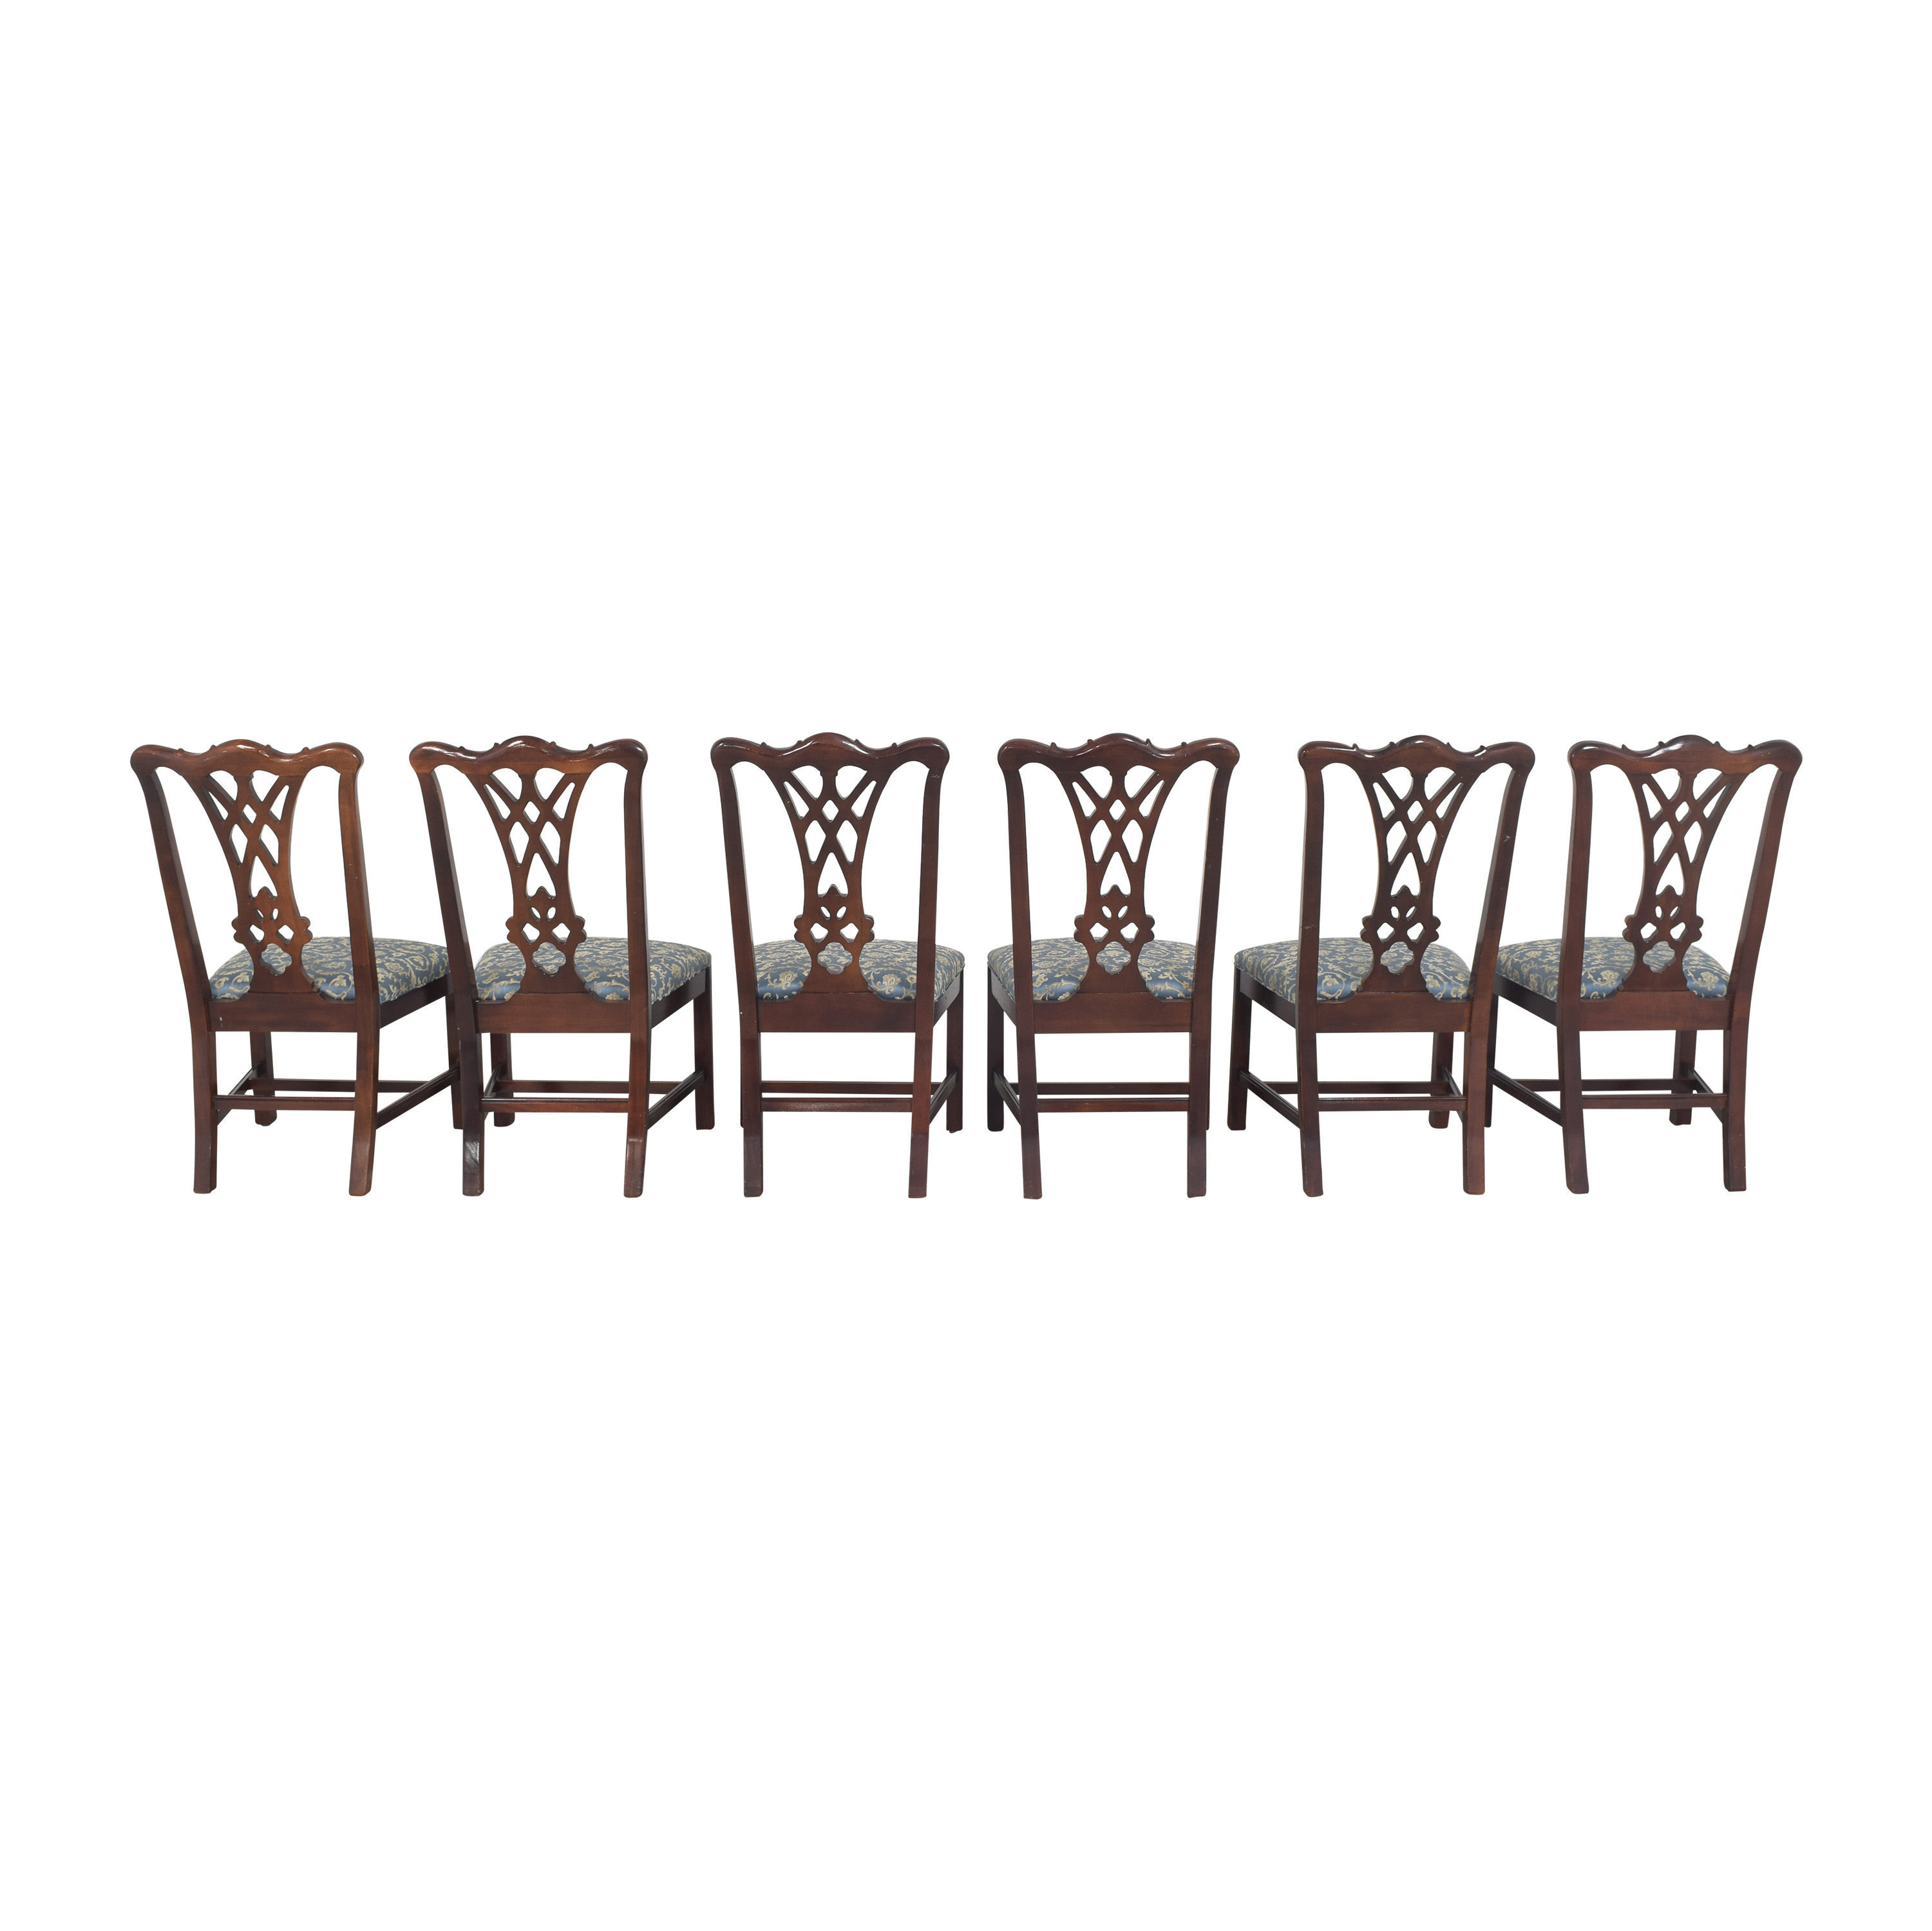 Thomasville Thomasville Chippendale Style Dining Chairs for sale